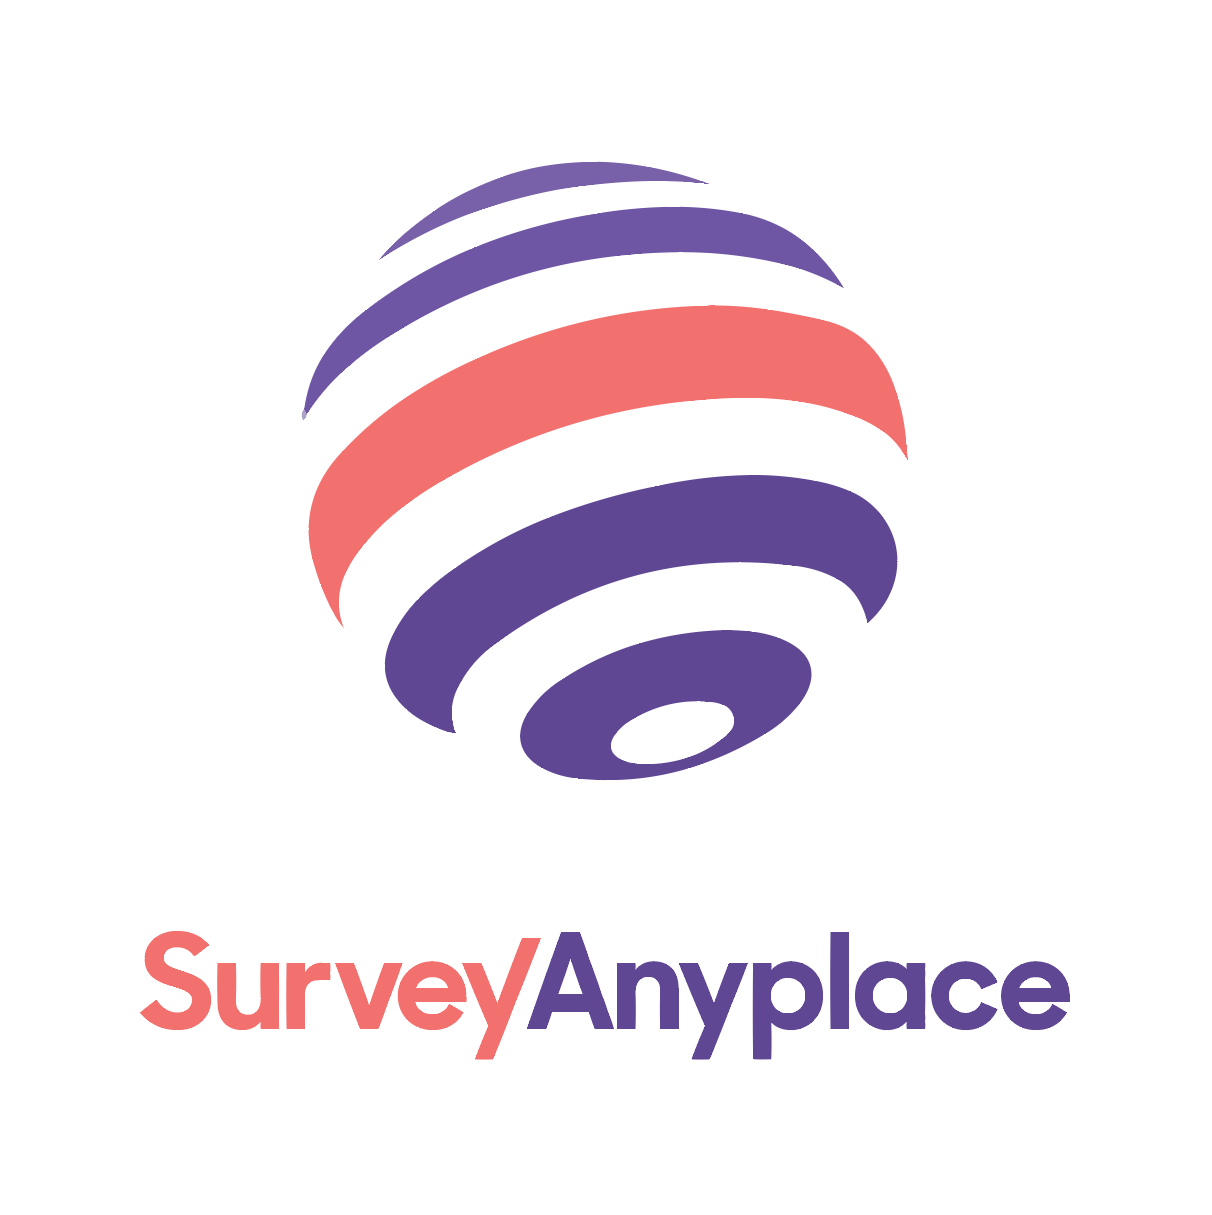 Survey Anyplace